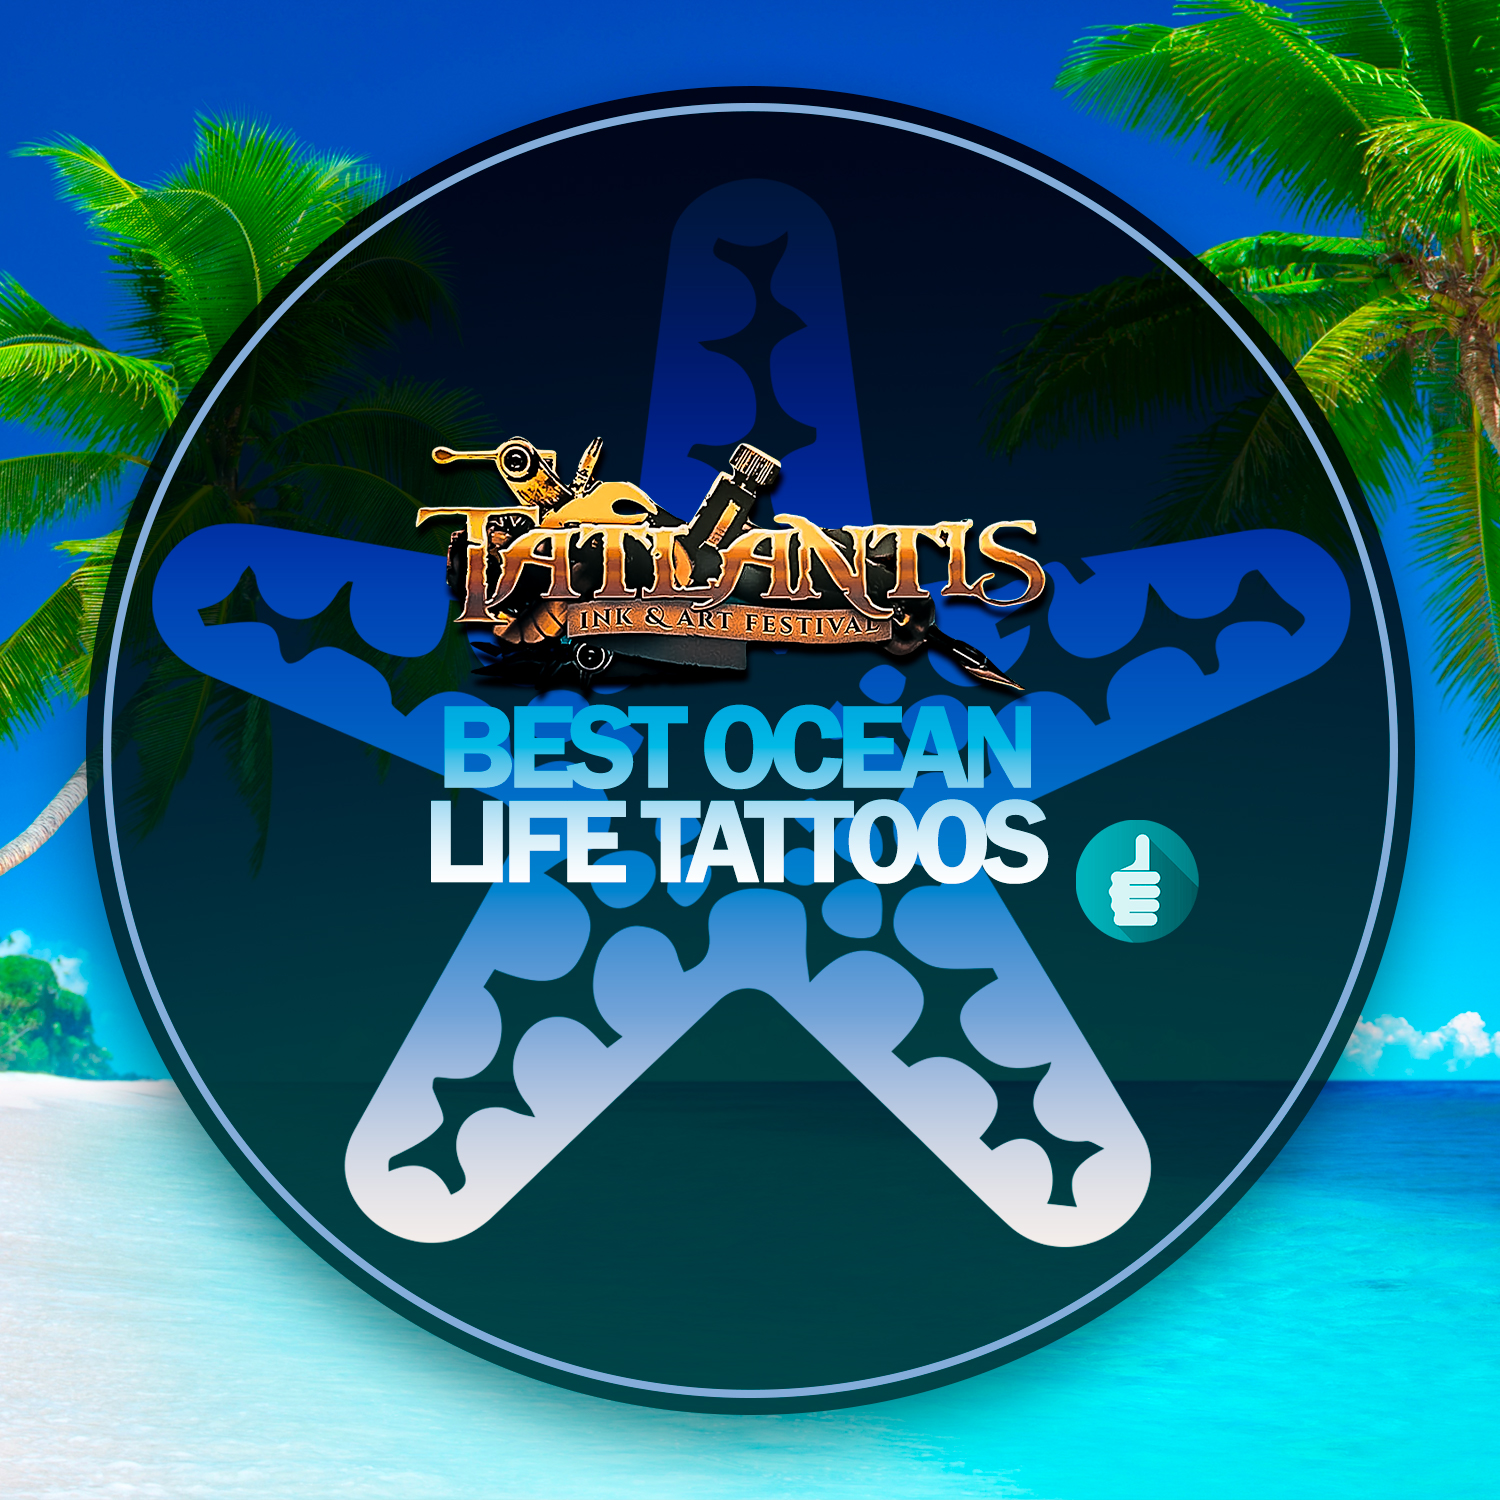 Best Ocean Life Tattoos July 2019 | Tatlantis